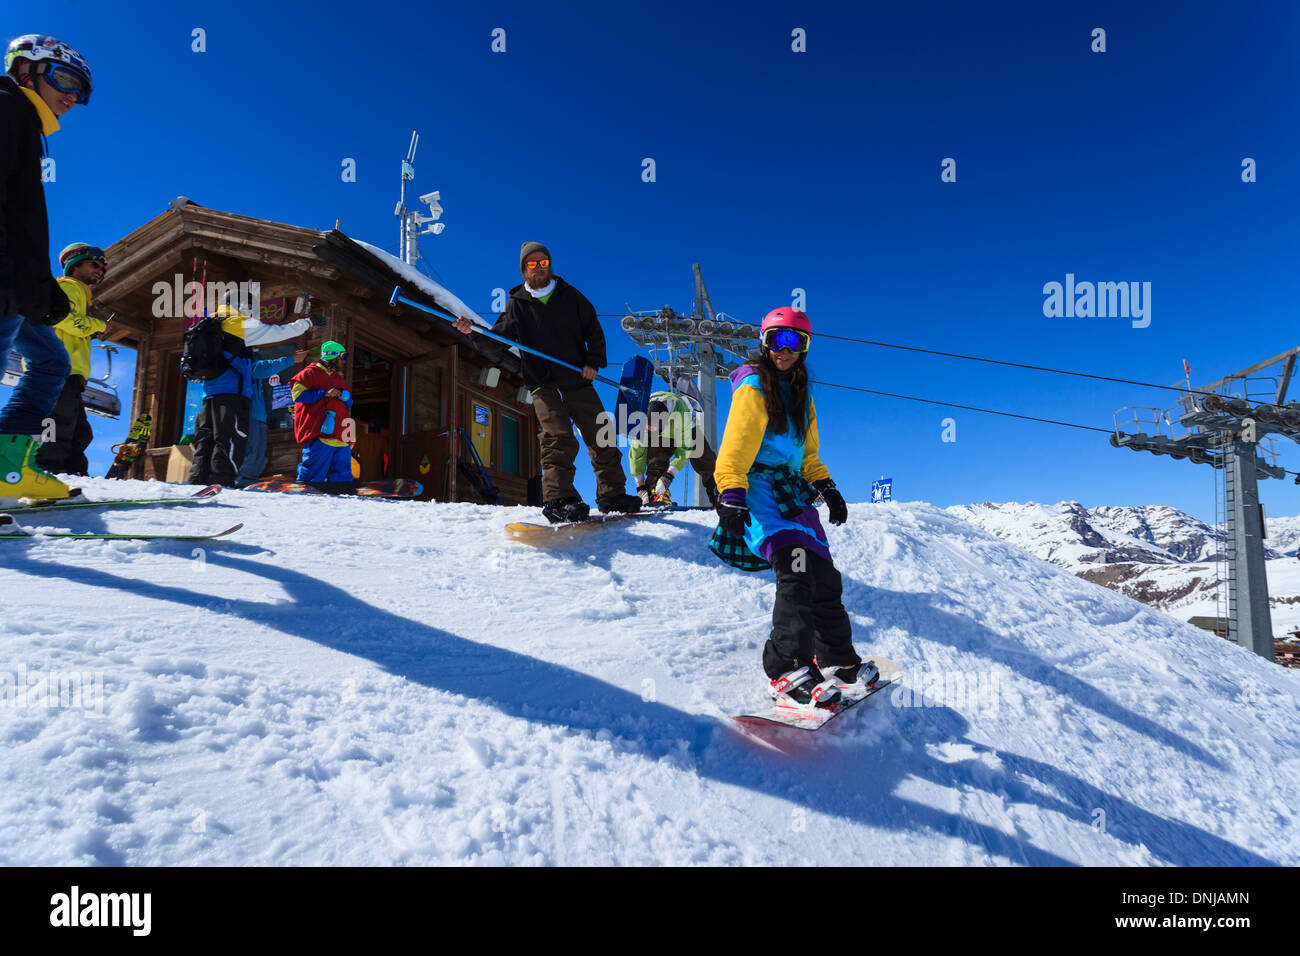 Ski and snowboarding action - Stock Image